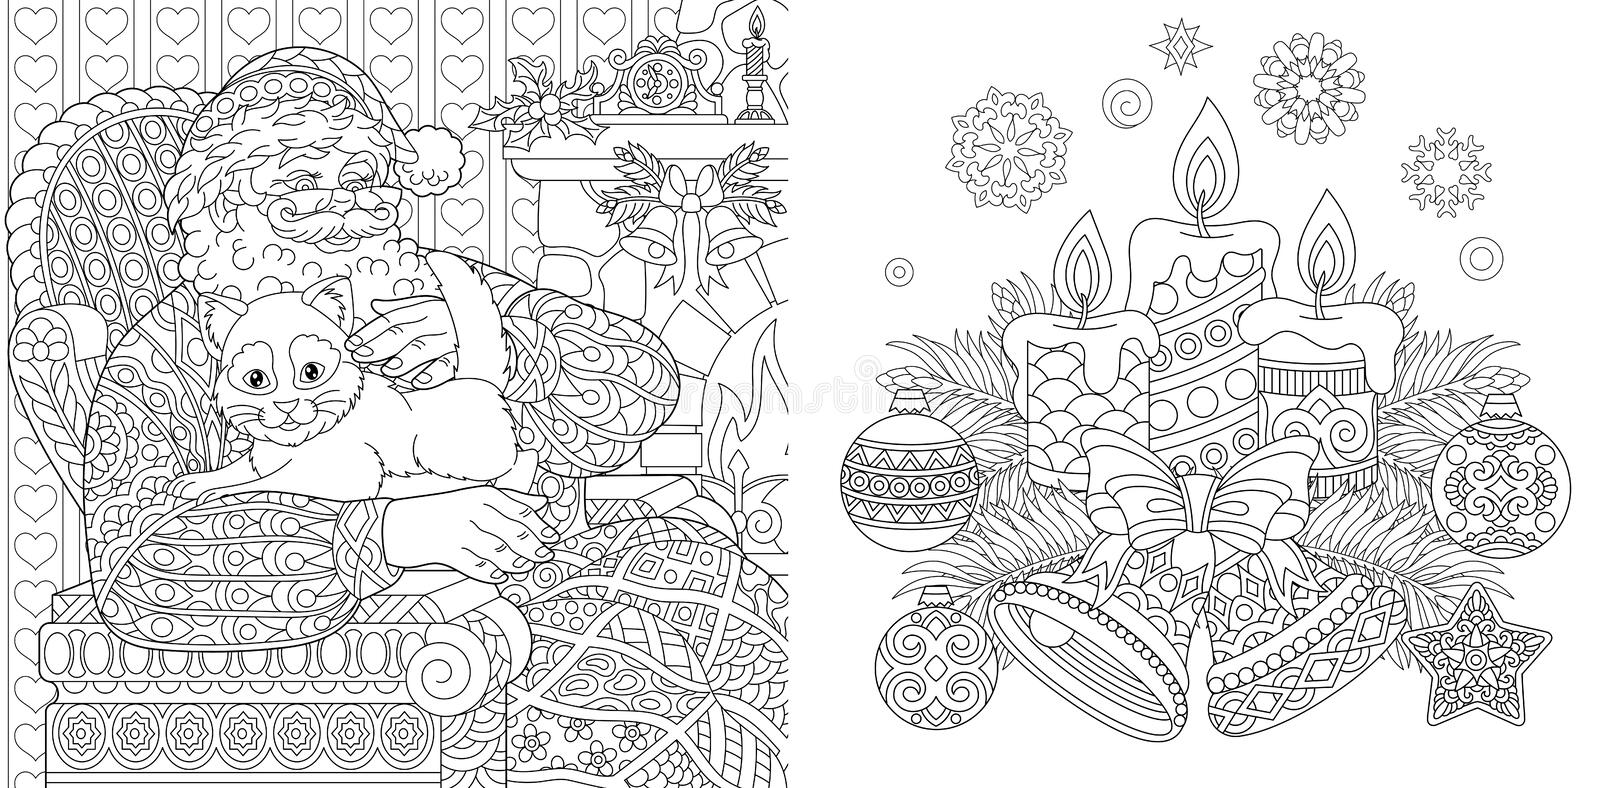 Christmas Colouring Pages. Coloring Book for adults. Santa Claus with a cat. New Year background. Vintage Xmas ornaments vector illustration